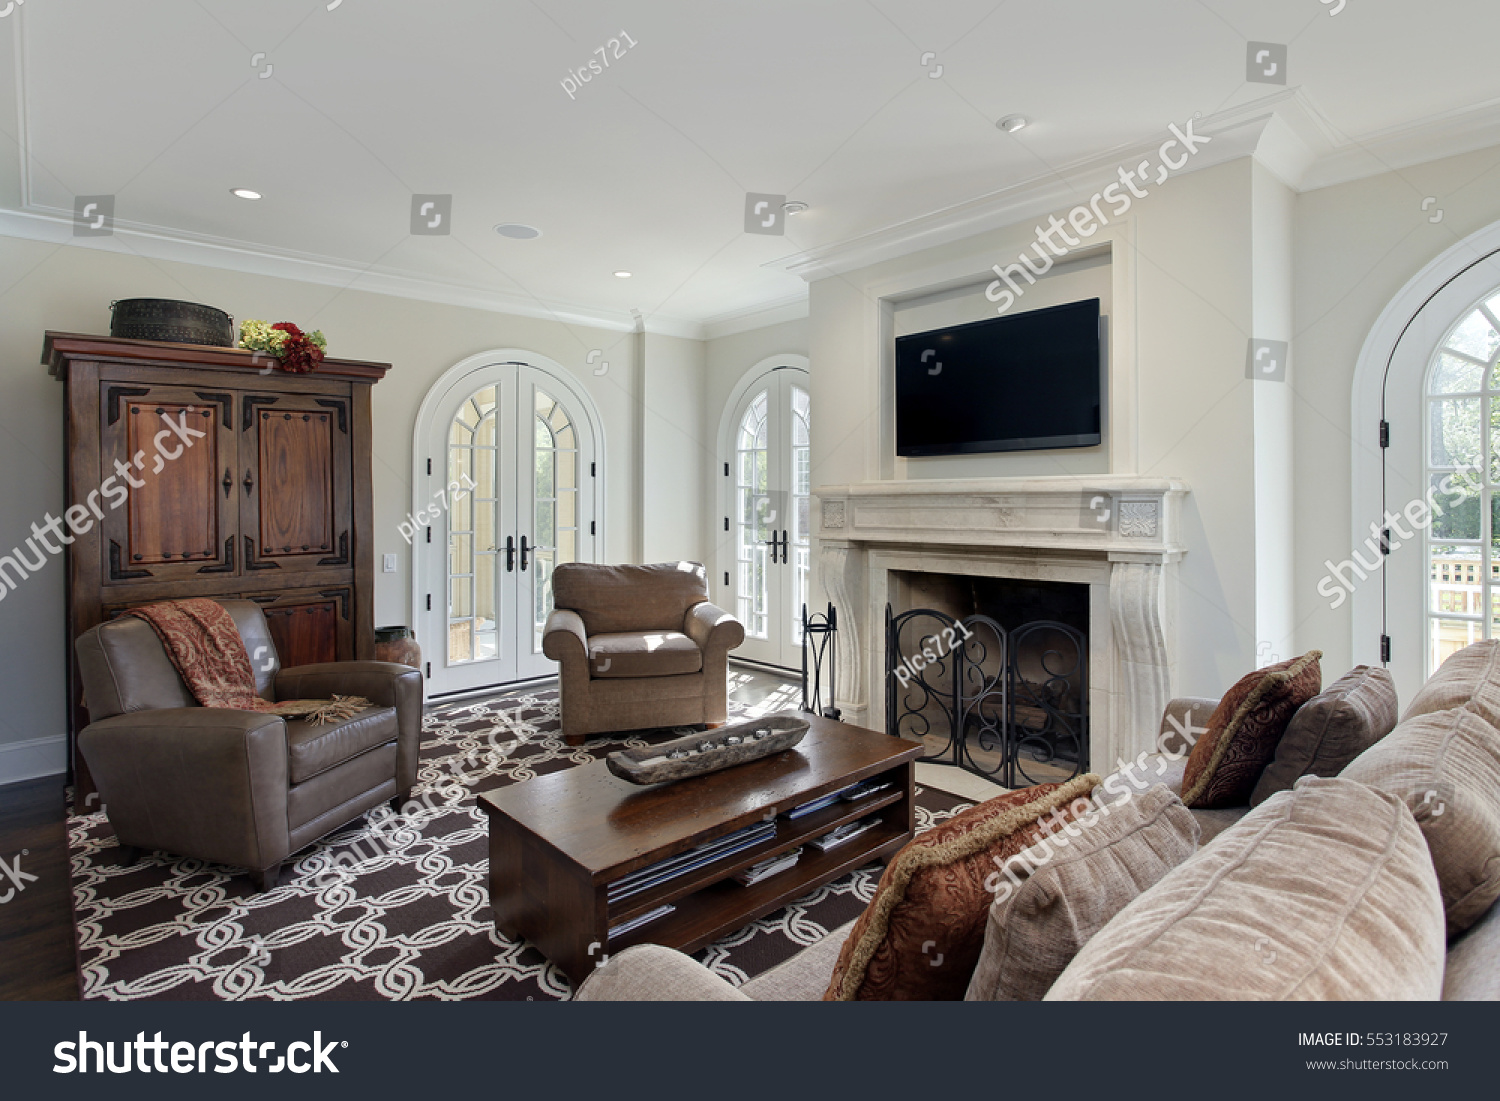 family room luxury home fireplace stock photo 553183927 shutterstock